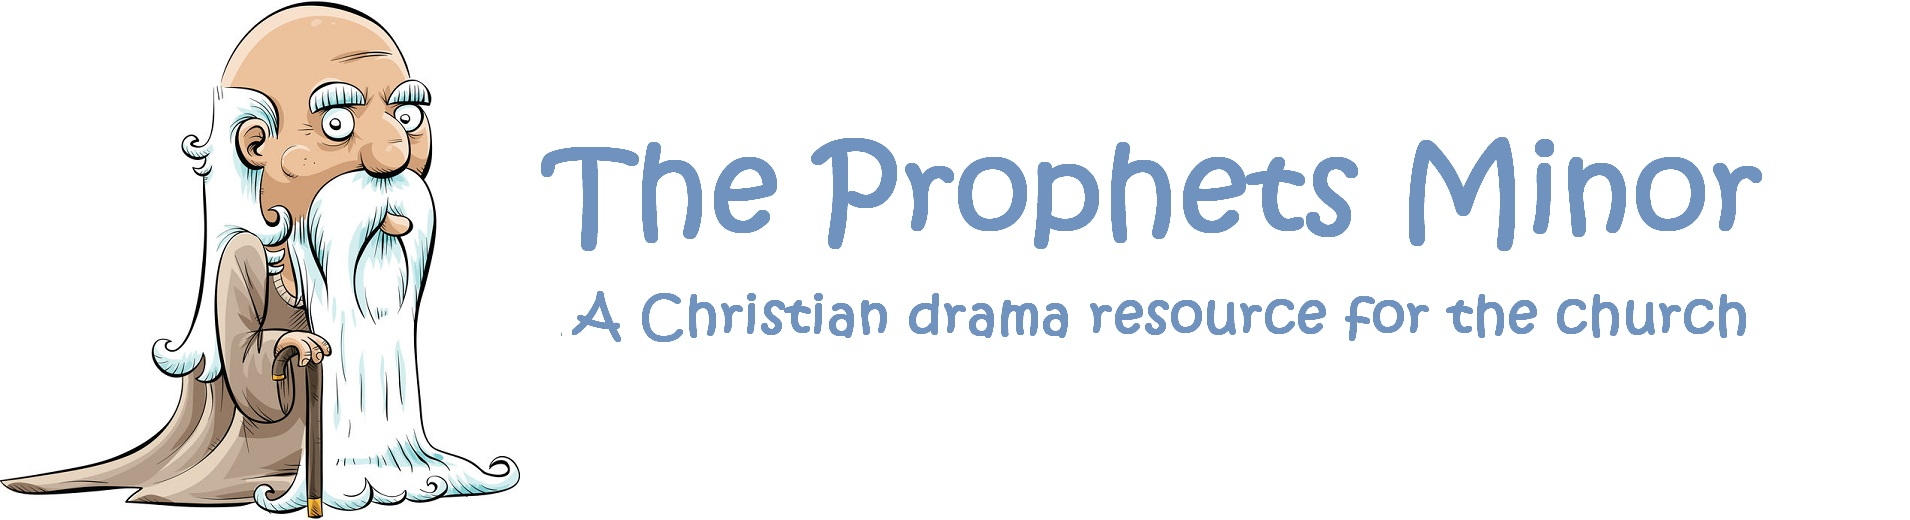 The Prophets Minor